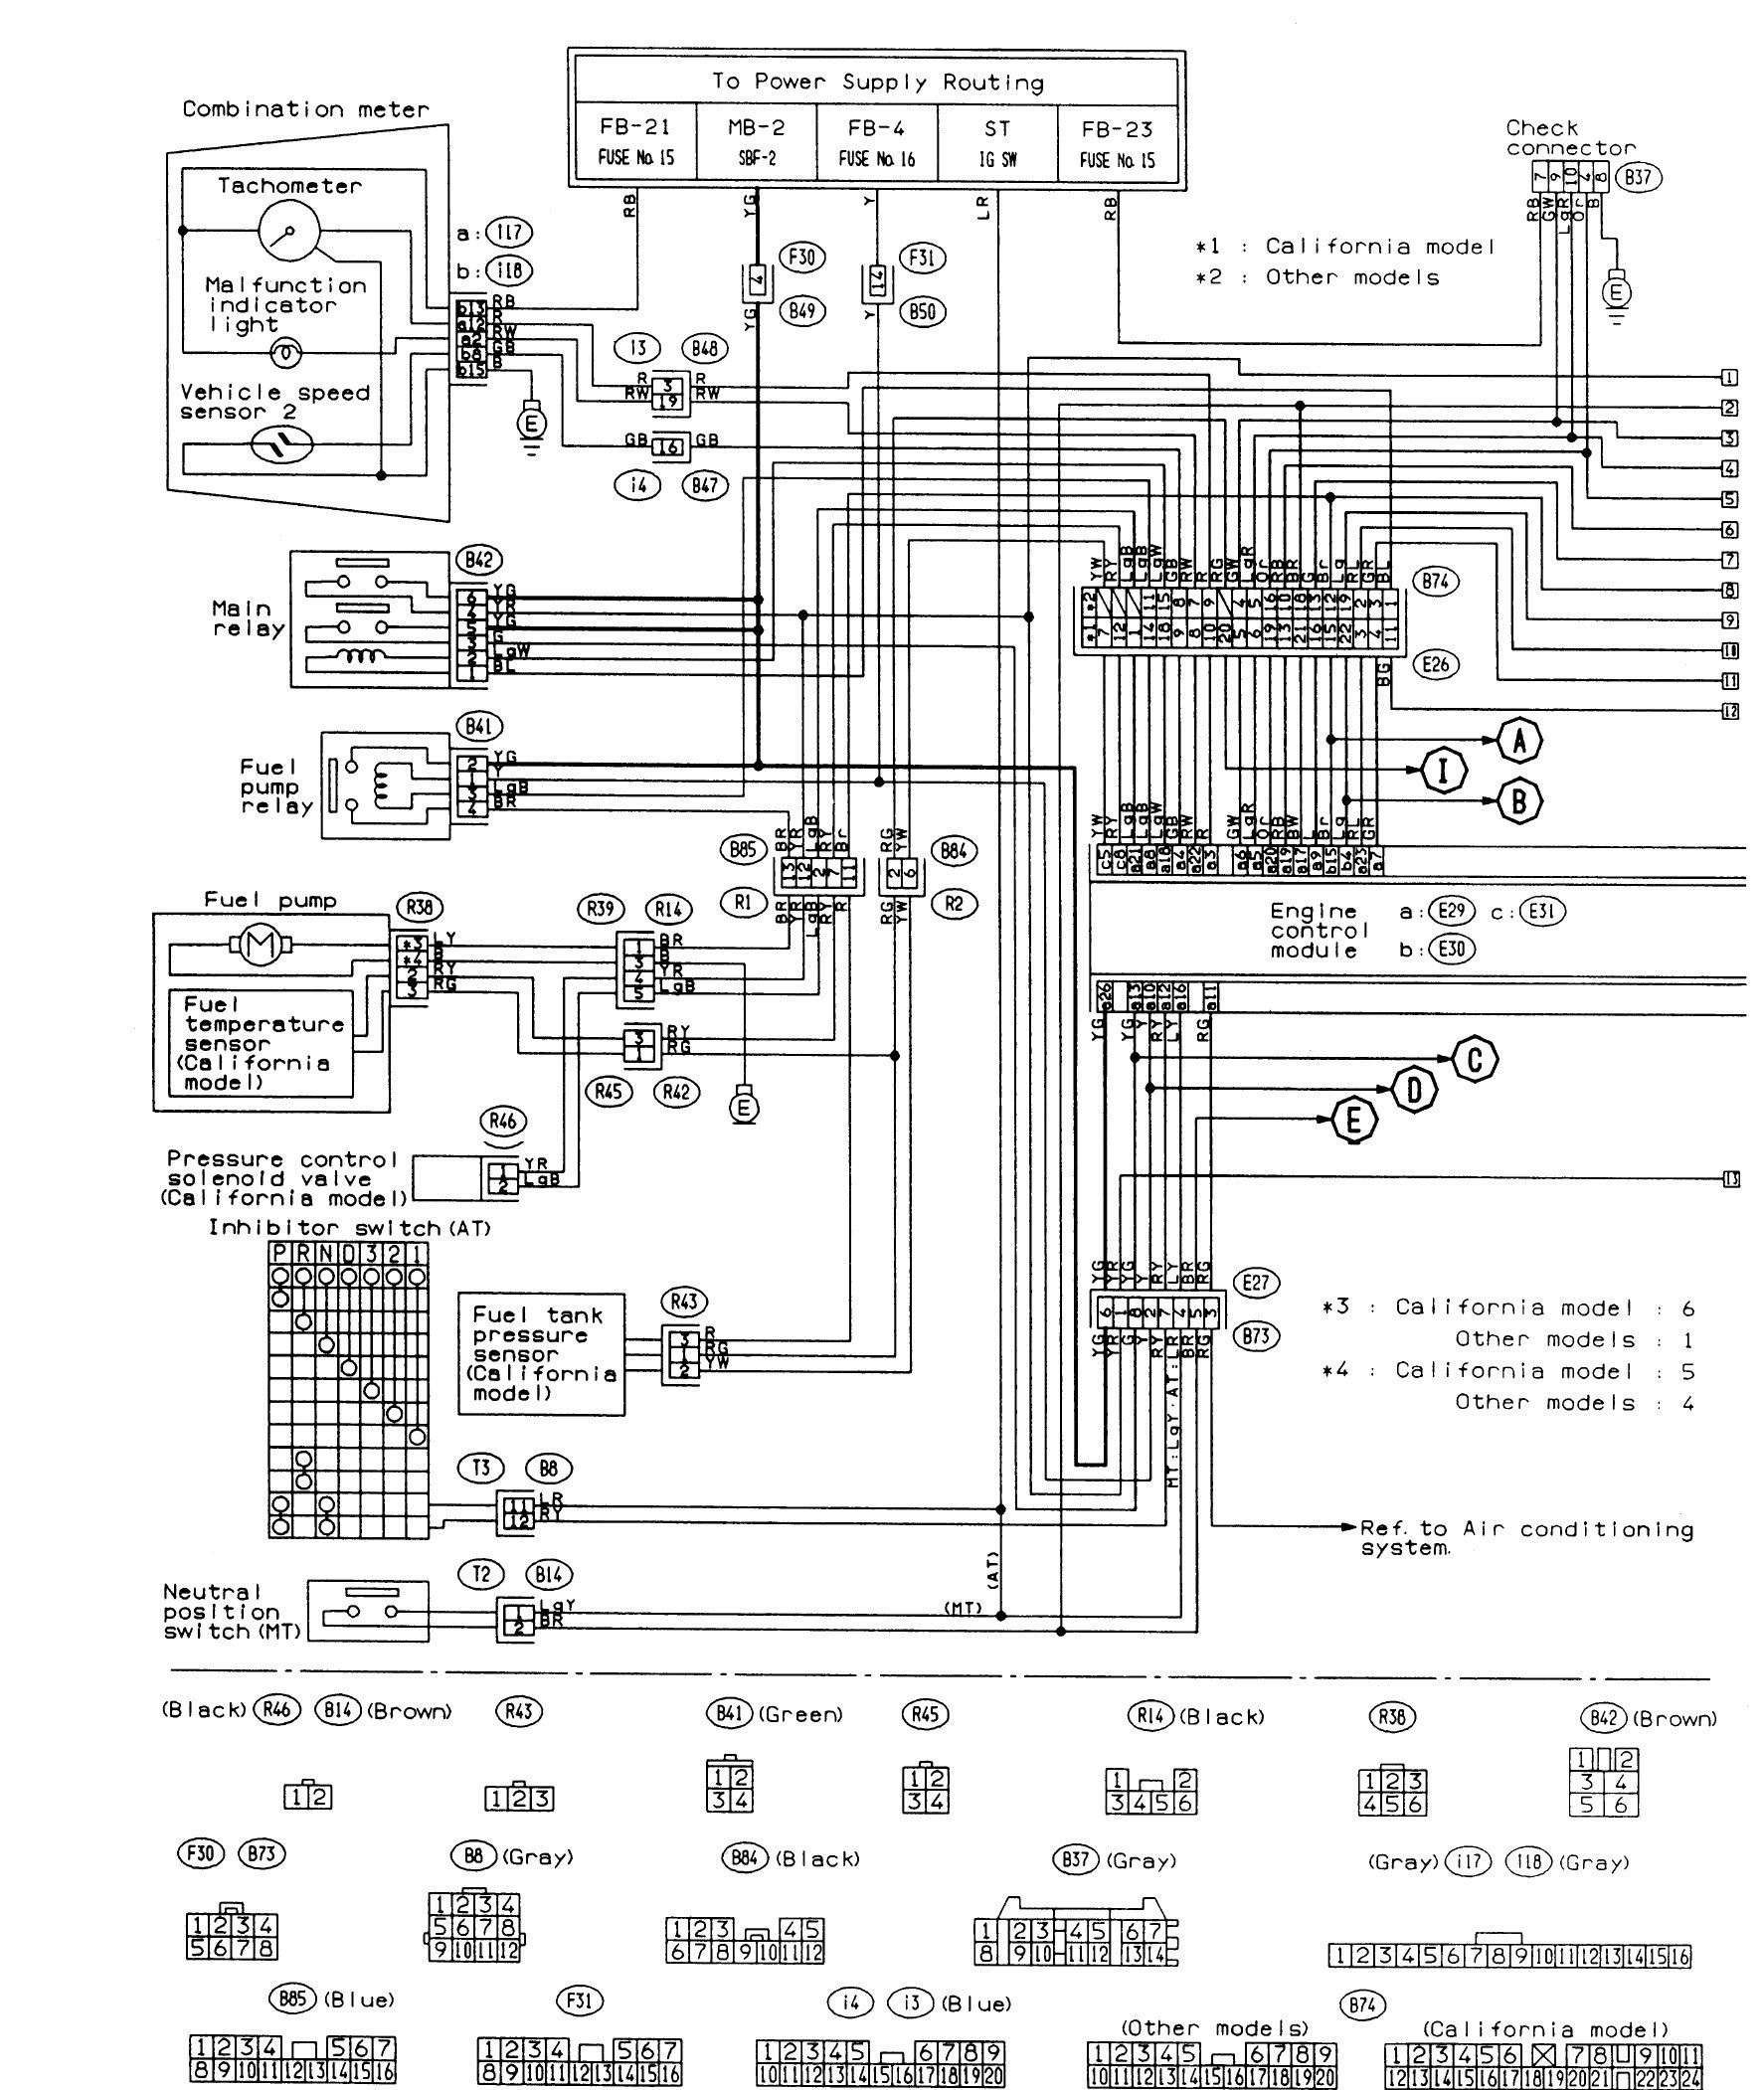 Subaru Wiring Diagram Color Codes Electrical Diagram Subaru Subaru Impreza